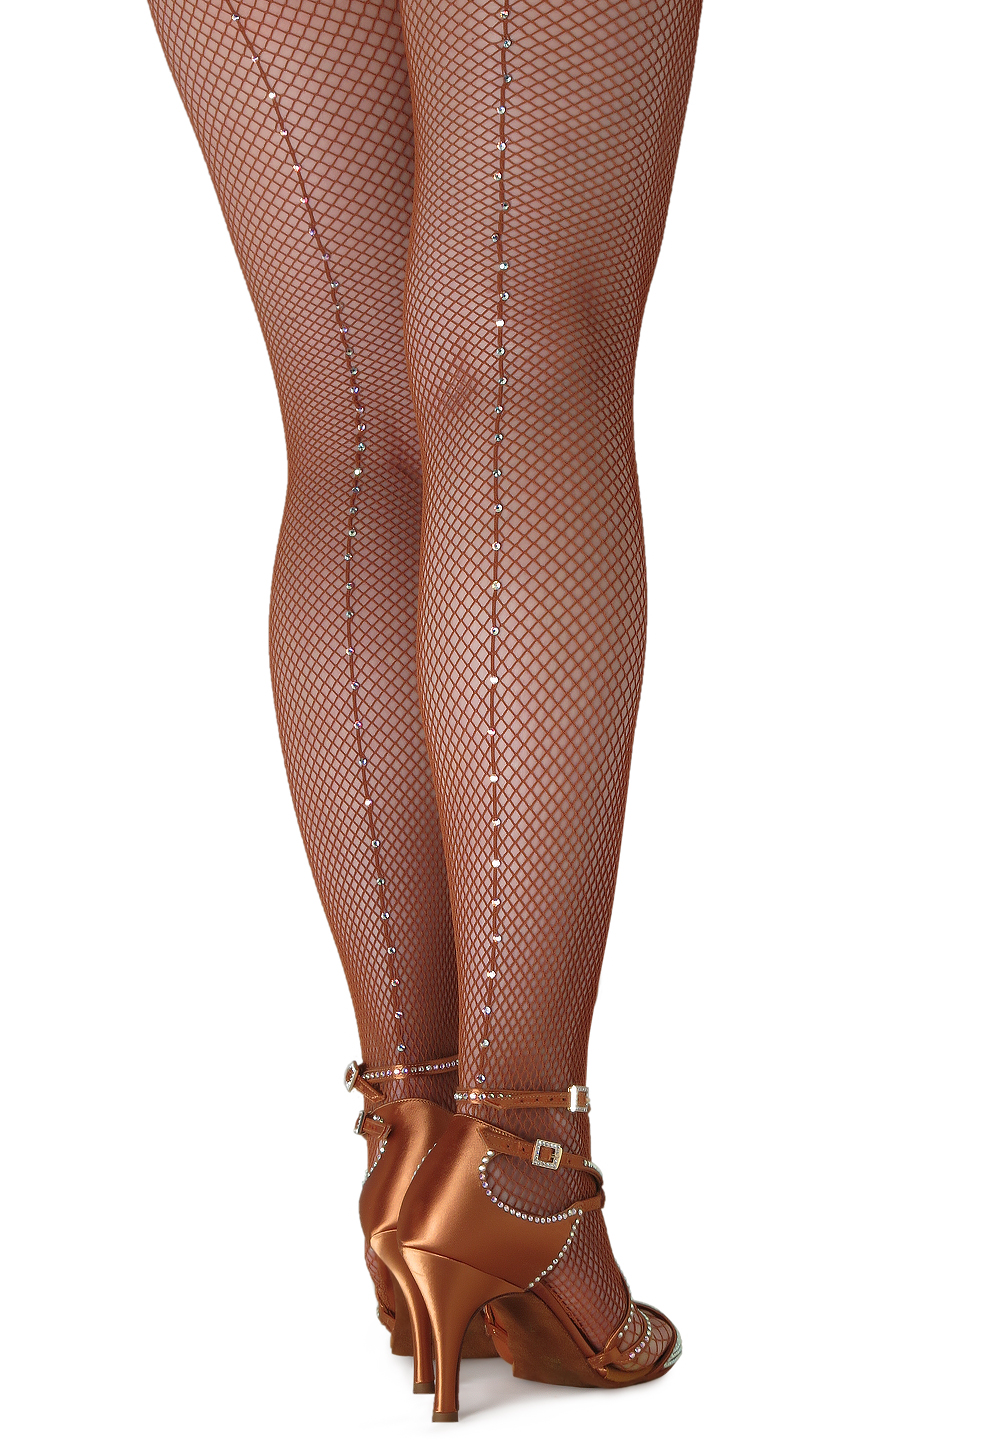 Crystallized Fishnet Tights - Swarovski Rhinestones on Capezio Tight